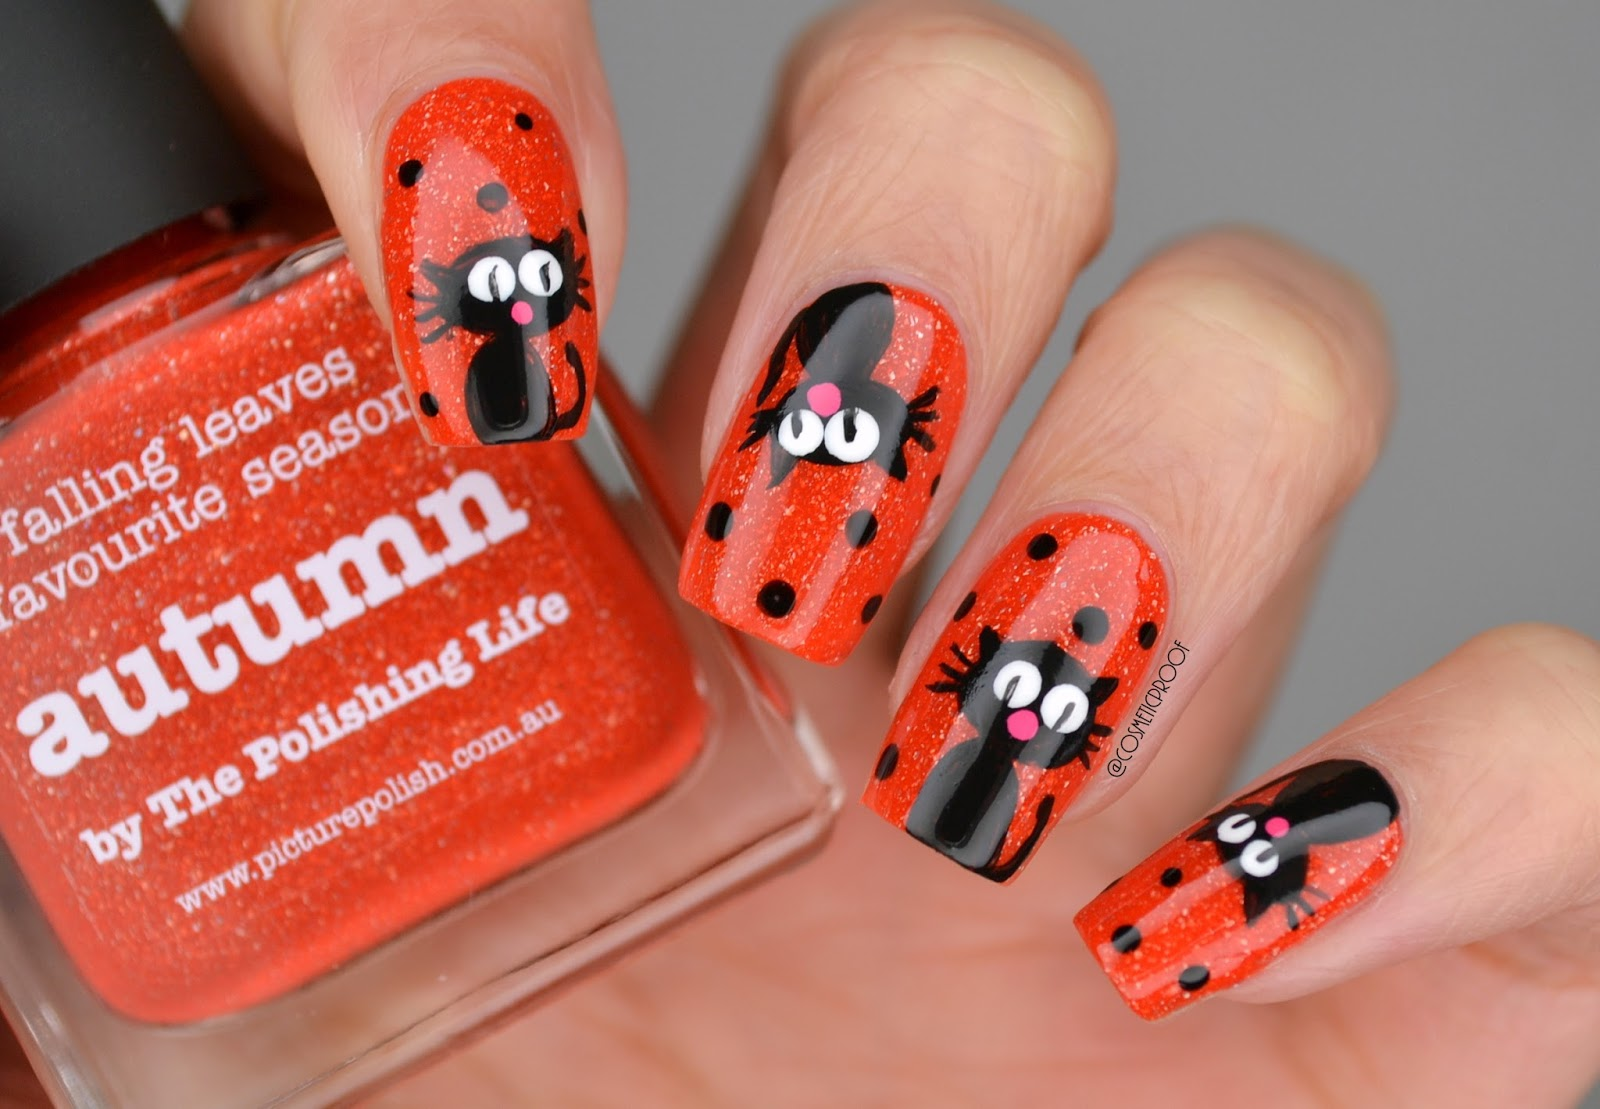 Nails happy halloween from hemingway manimonday cosmetic halloween black cat nail art prinsesfo Images